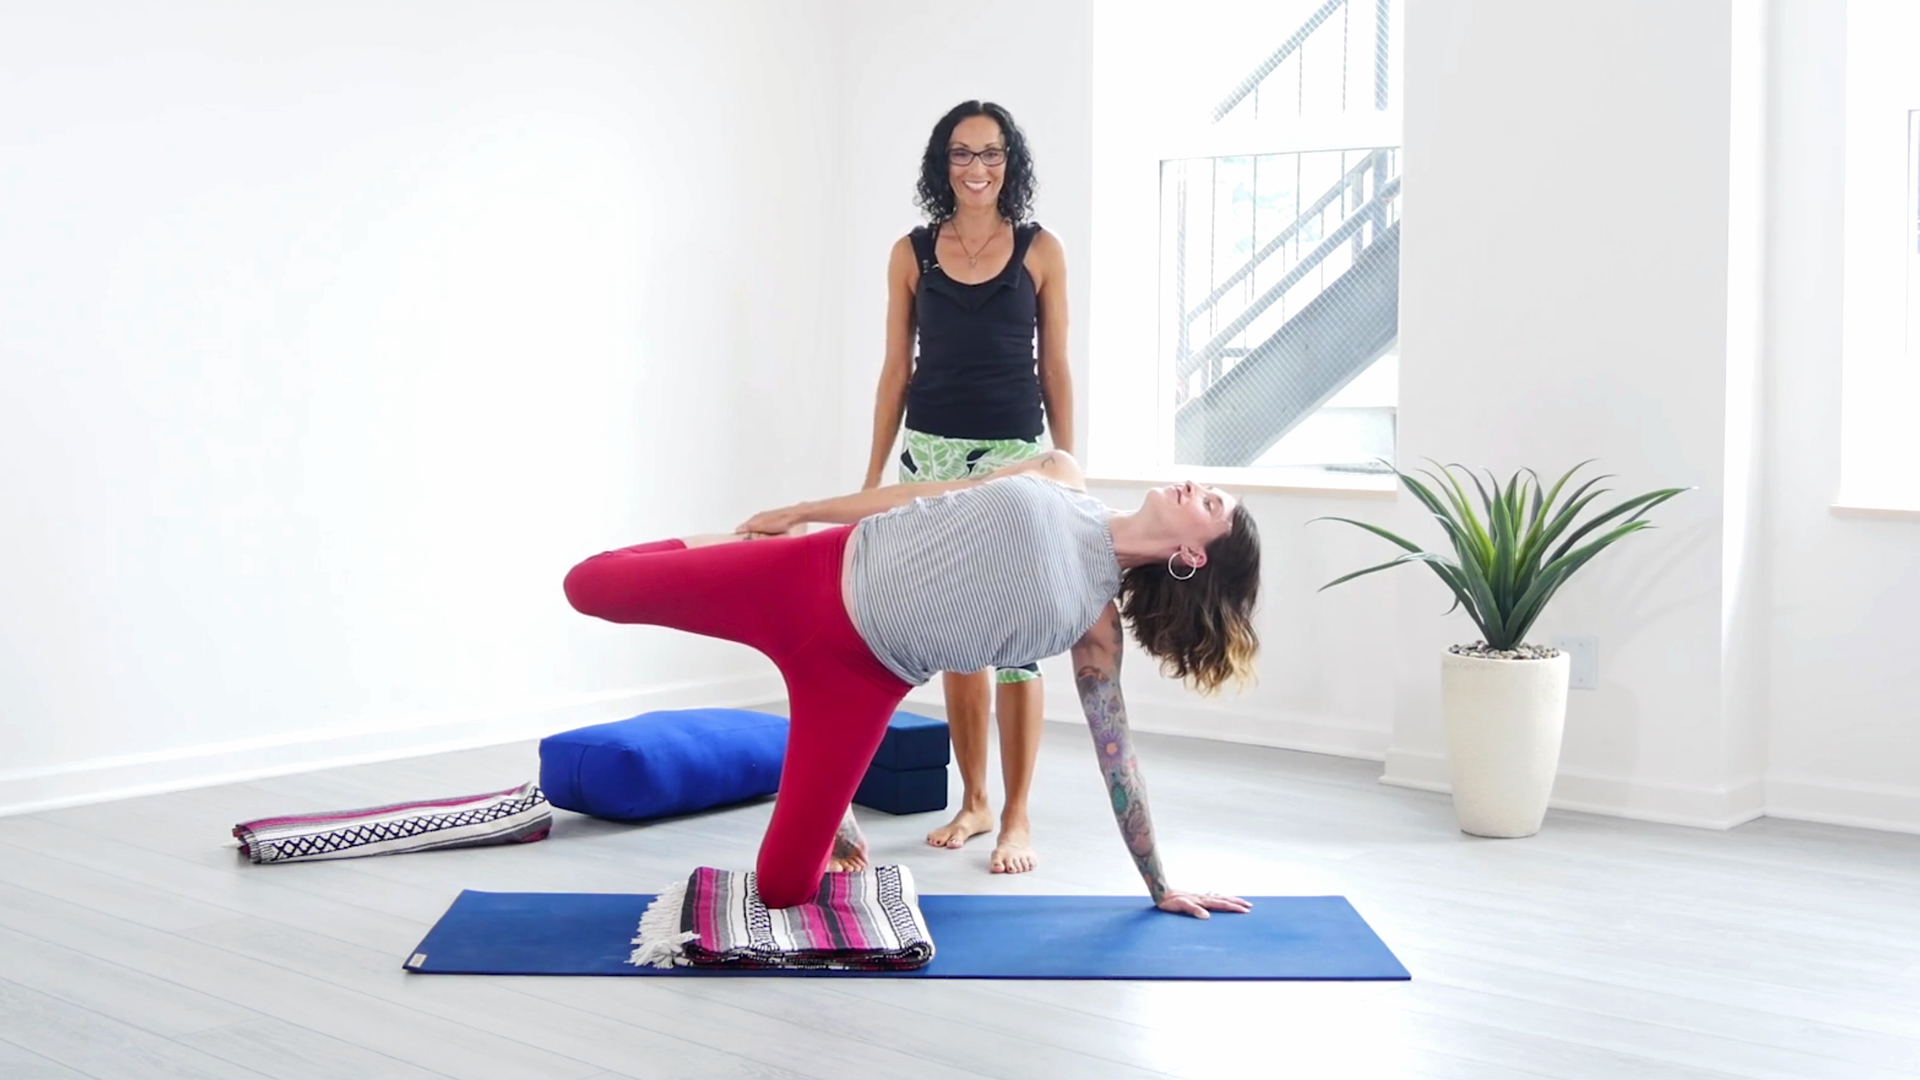 Watch Prenatal Yoga to Energize Your Day | Prime Video